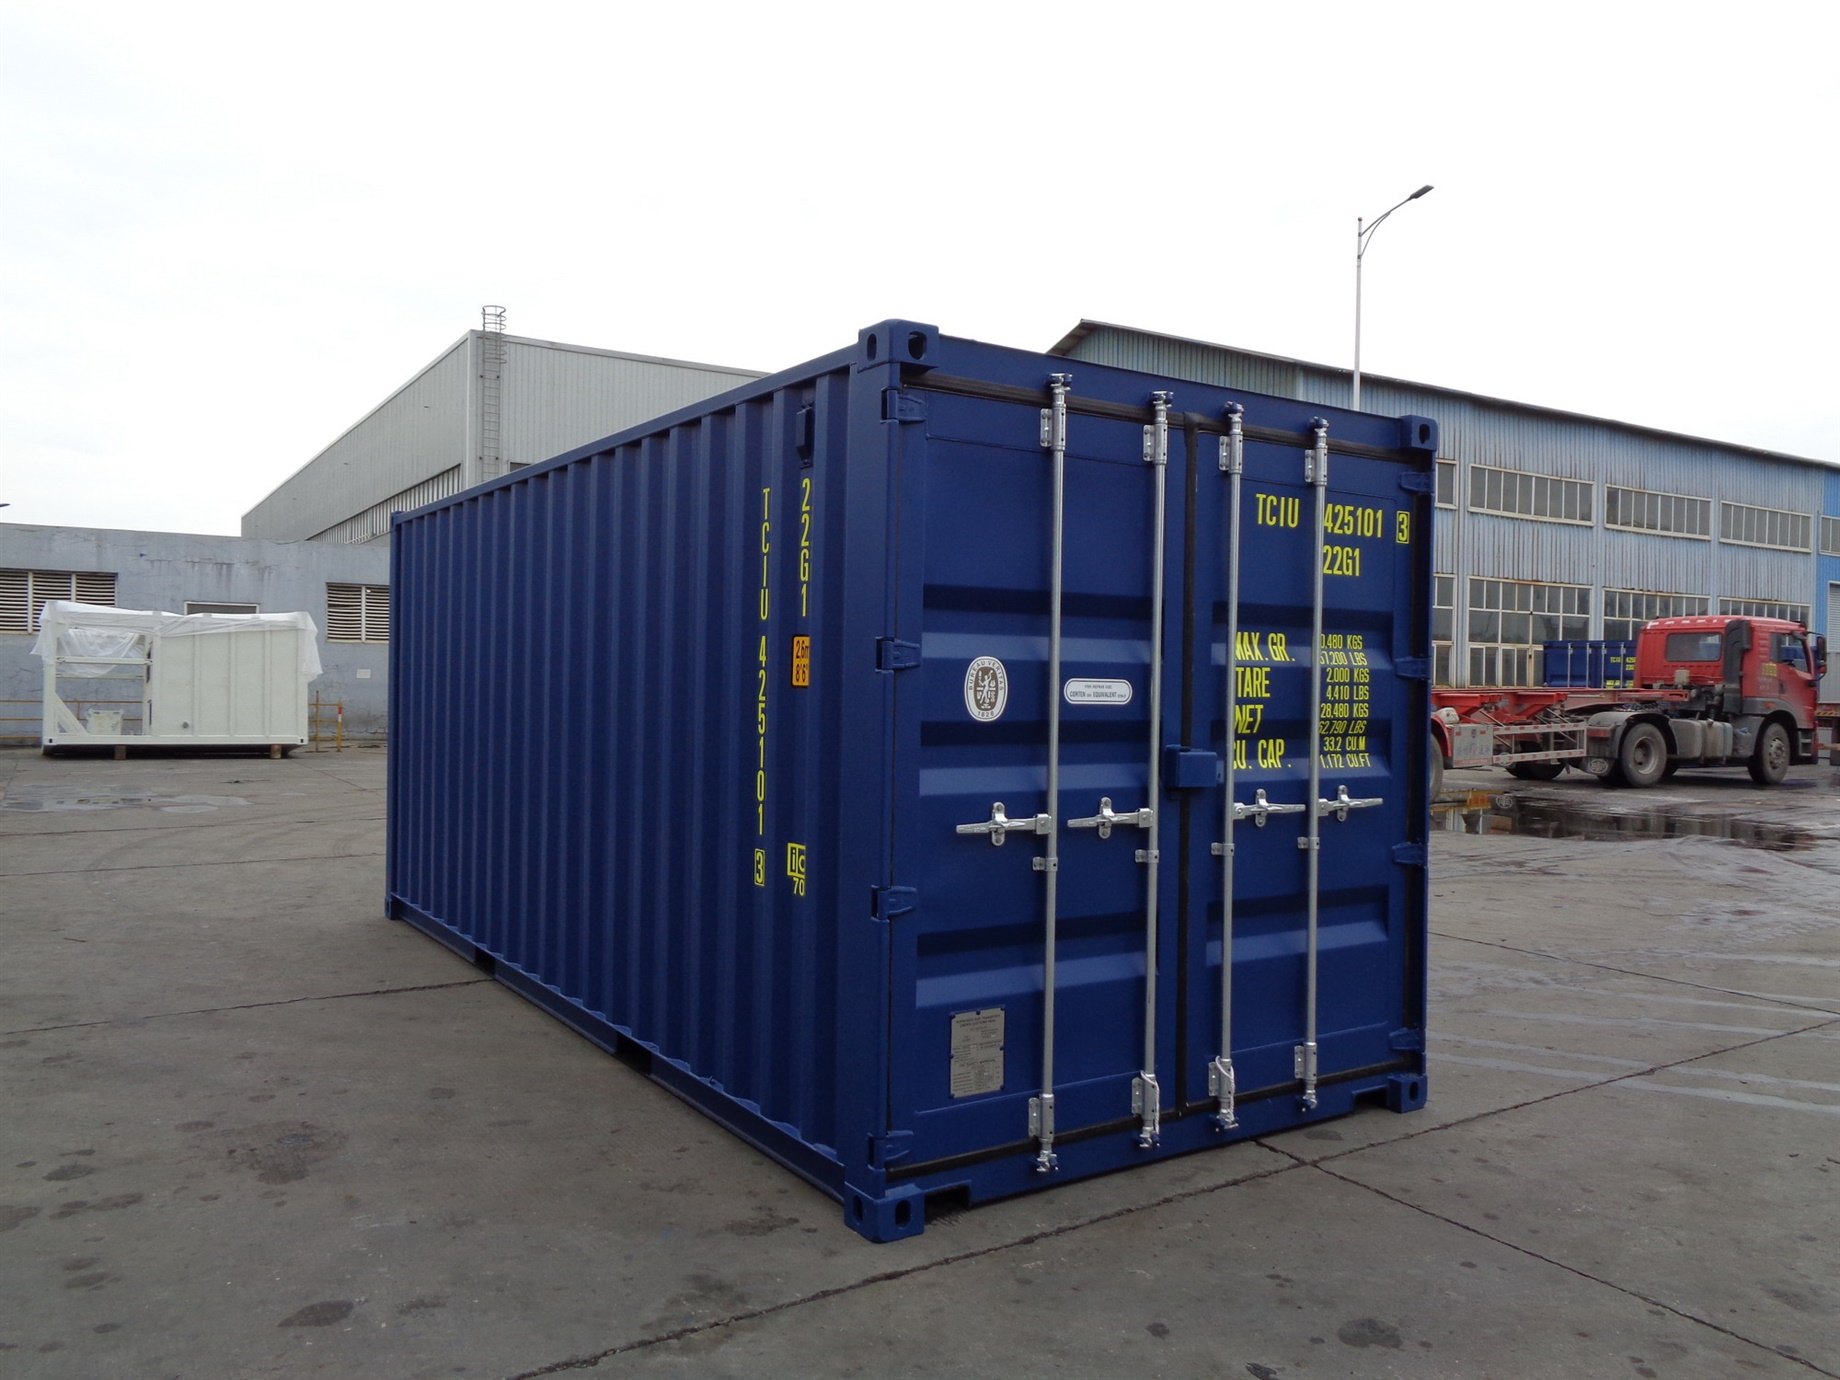 20 foot HC High Cube blue storage container titan containers